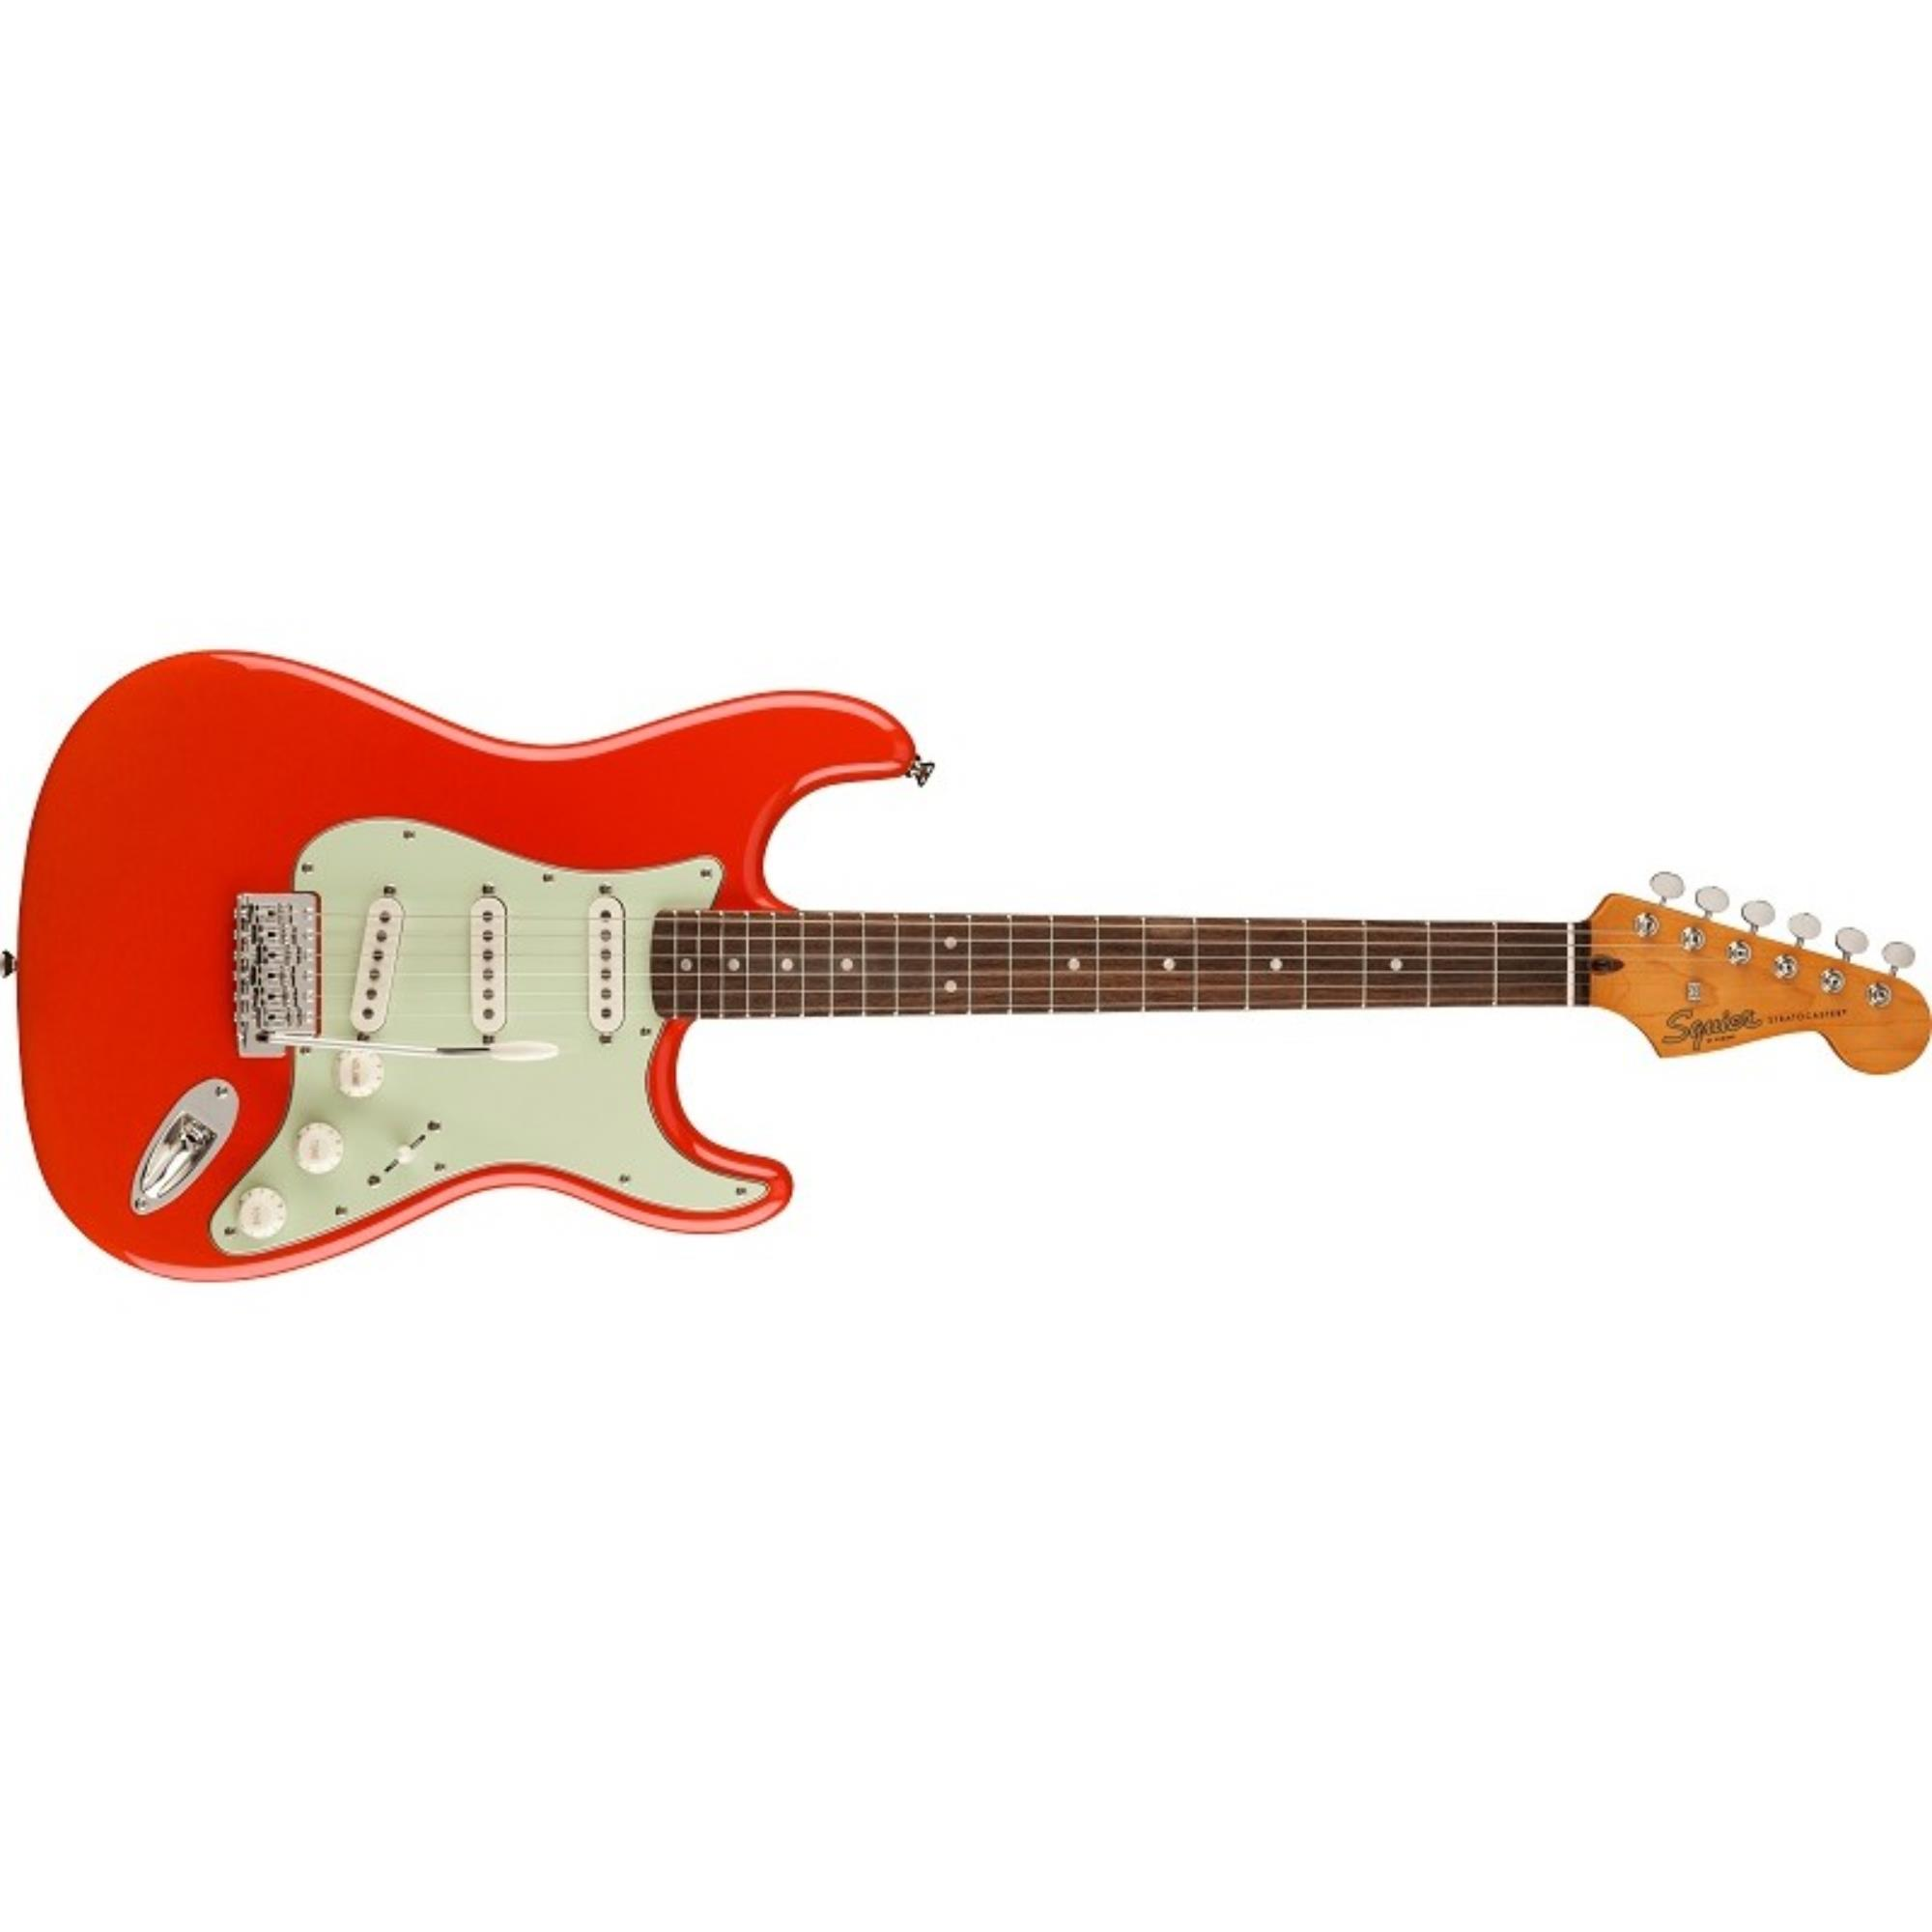 SQUIER-FSR-Classic-Vibe-60s-Stratocaster-LF-Mint-Pickguard-Fiesta-Red-LIMITED-EDITION-0374011540-sku-24485